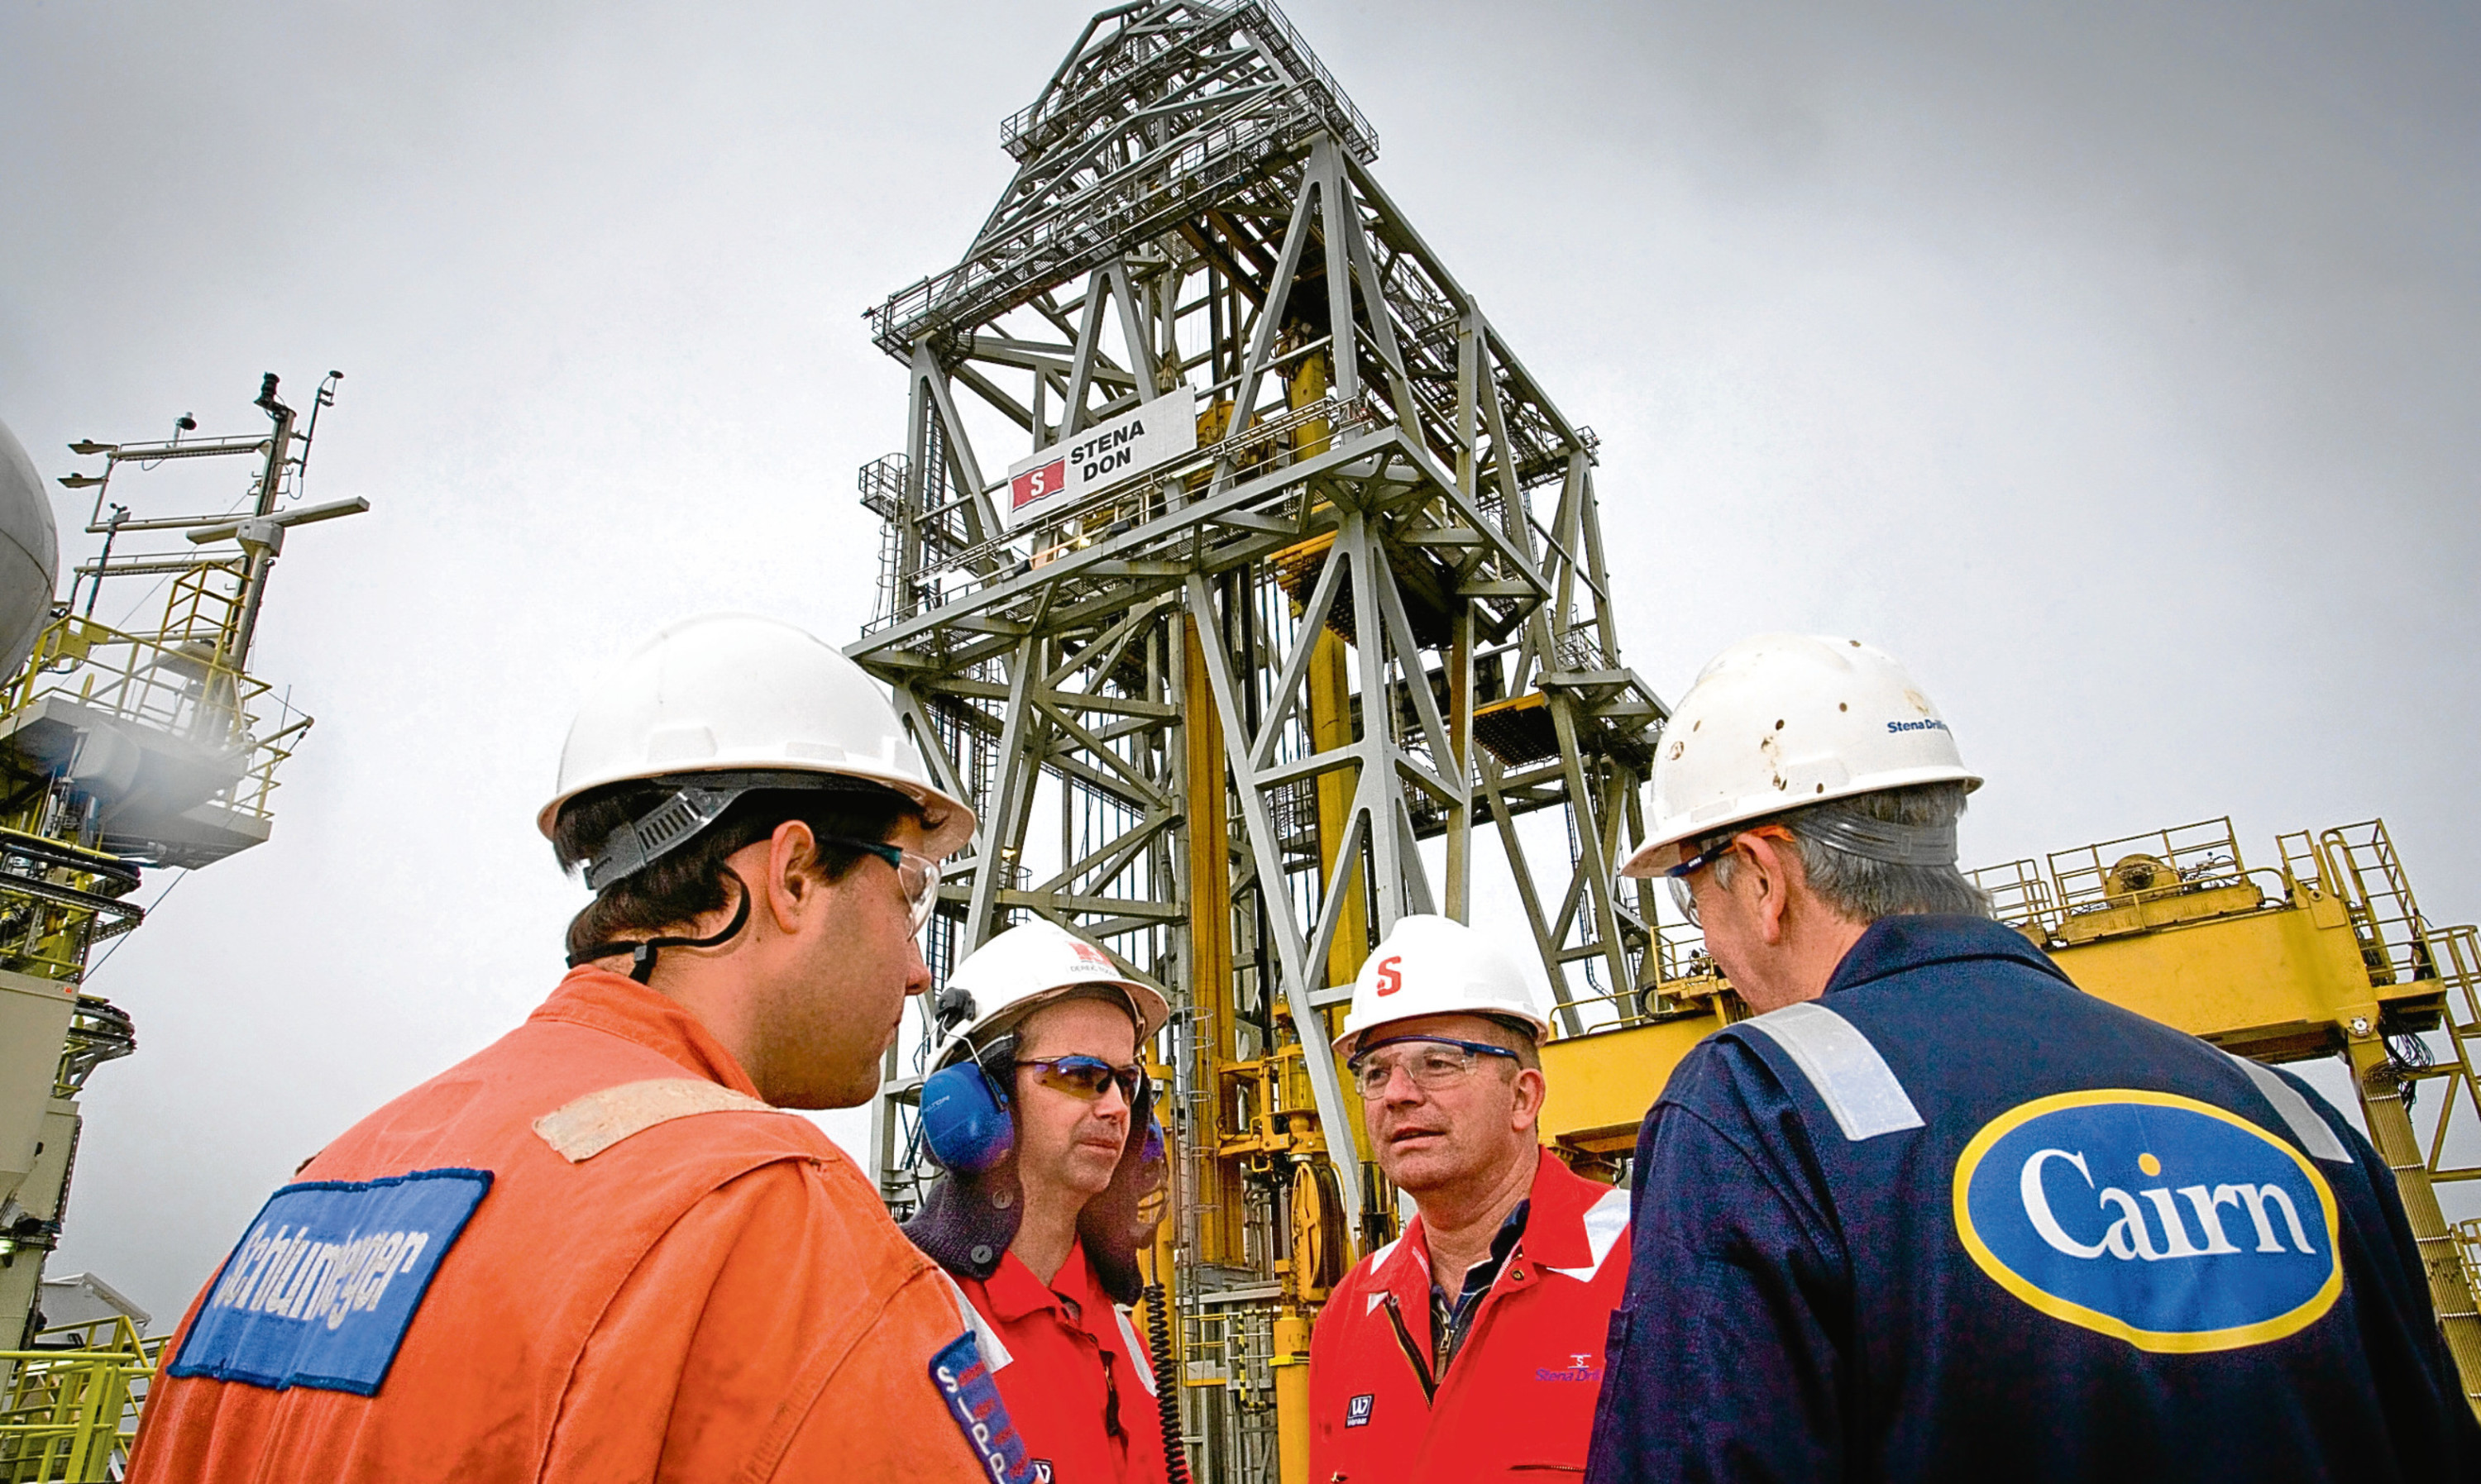 A Cairn technician in discussion with industry colleagues